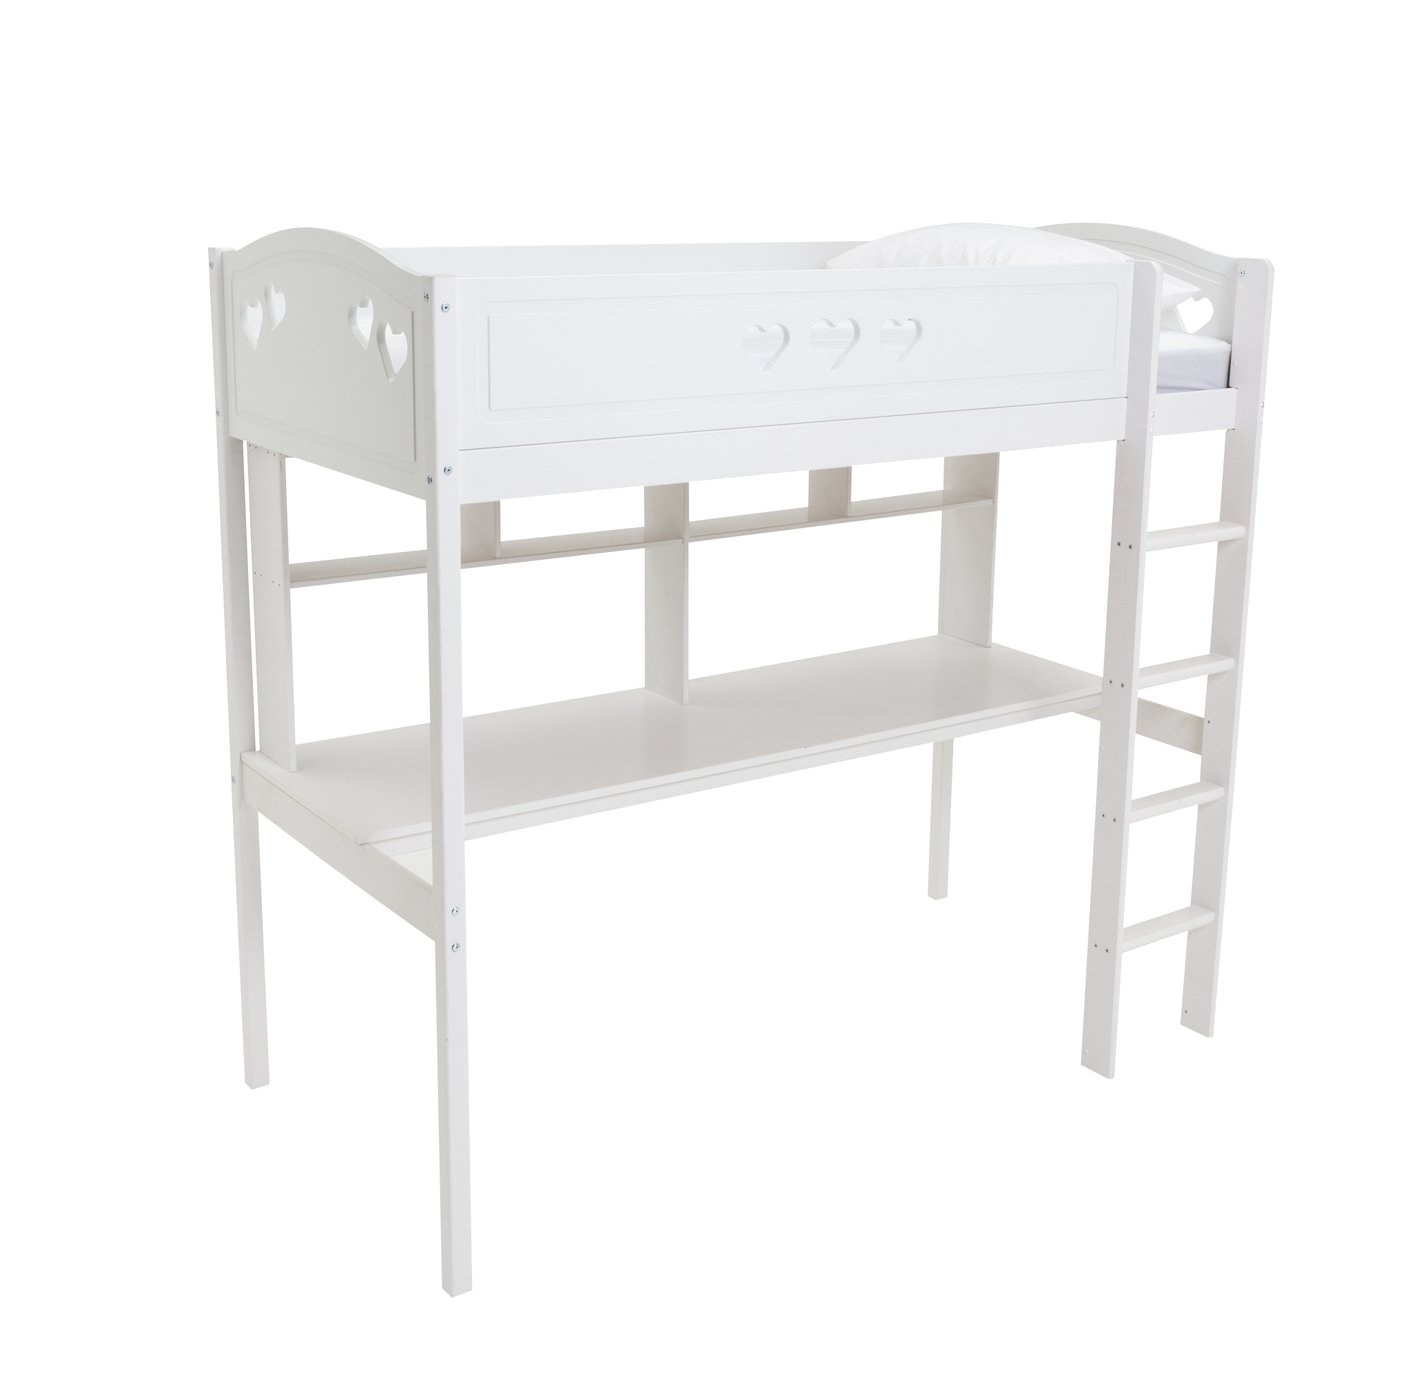 Argos Home Mia White High Sleeper, Desk & Kids Mattress